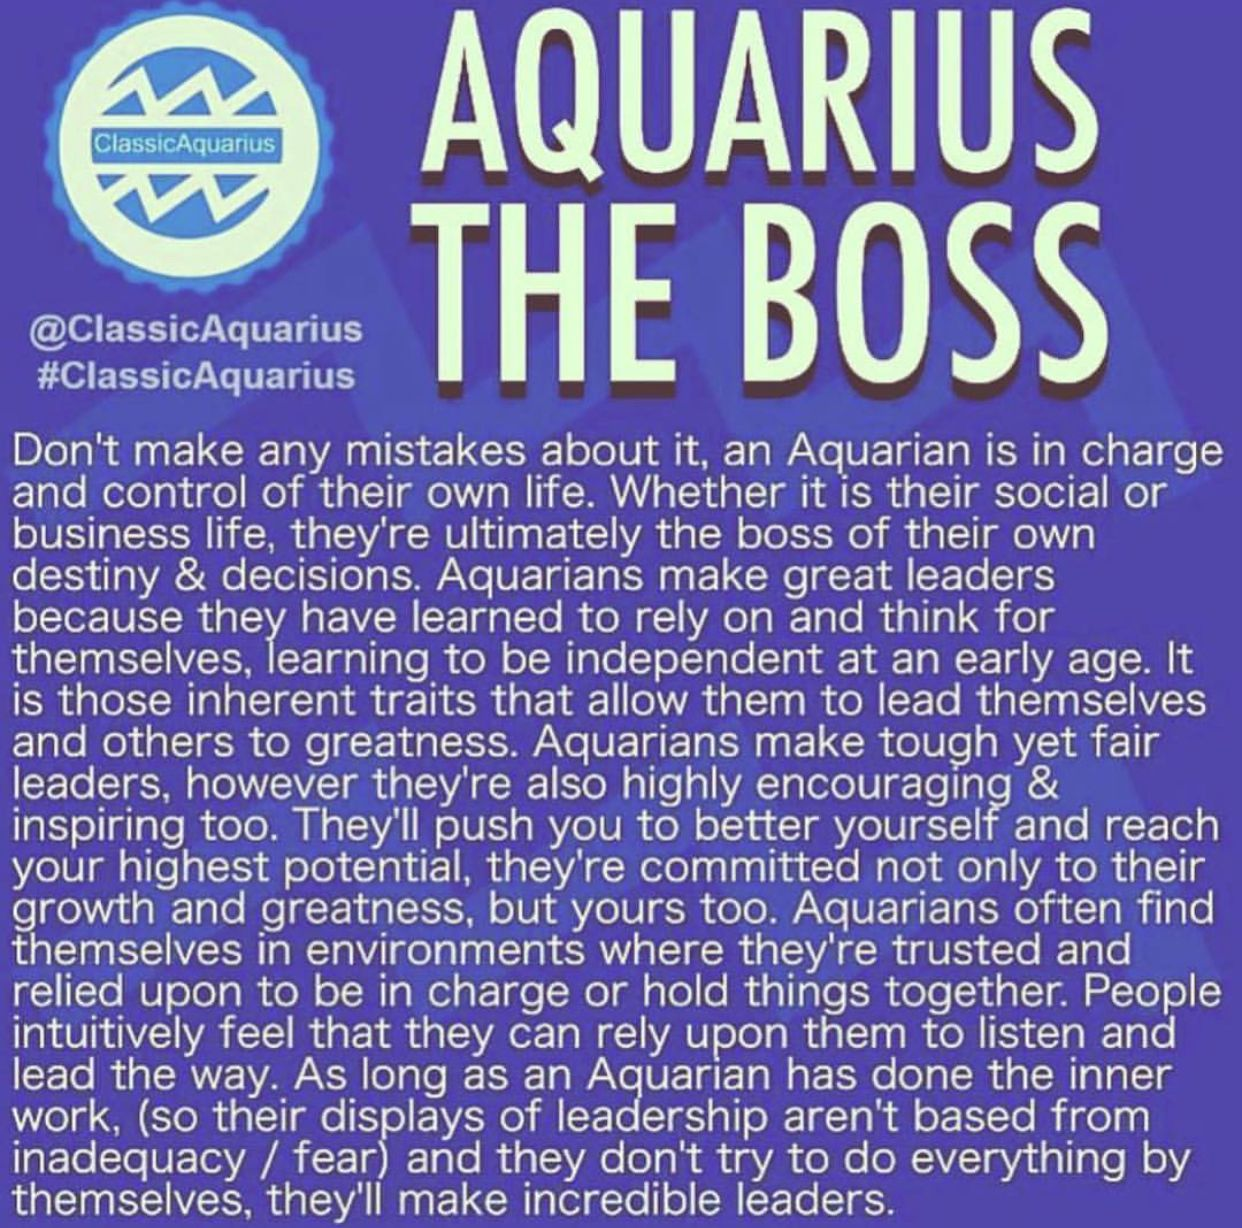 Pin By Preethi Ram On Aquarius Women In 2020 Zodiac Signs Aquarius Aquarius Truths Aquarius Horoscope